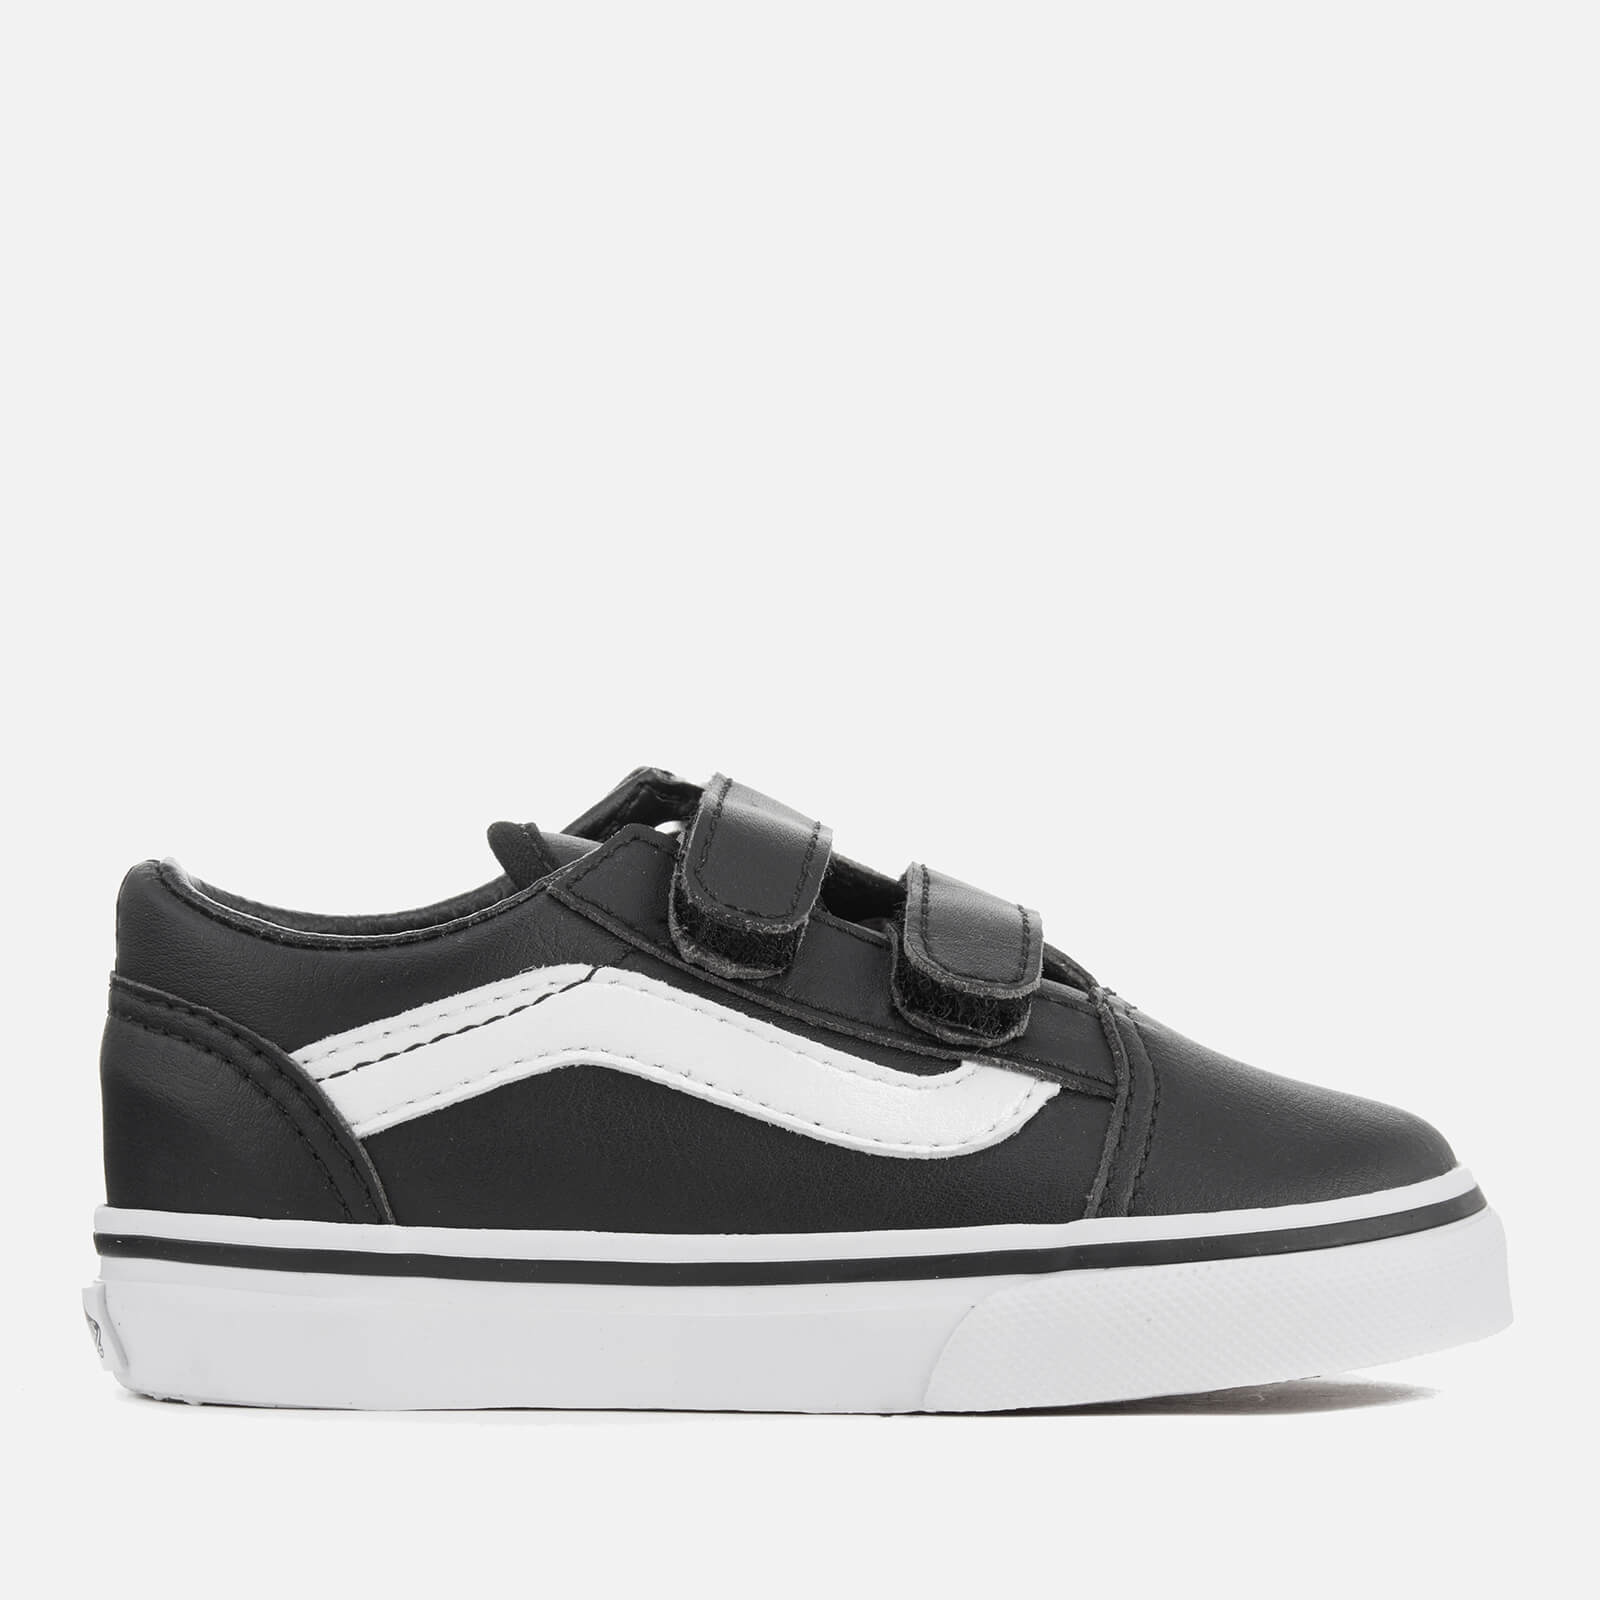 f06819865f0 ... Vans Toddlers  Old Skool V Classic Tumble Trainers - Black True White